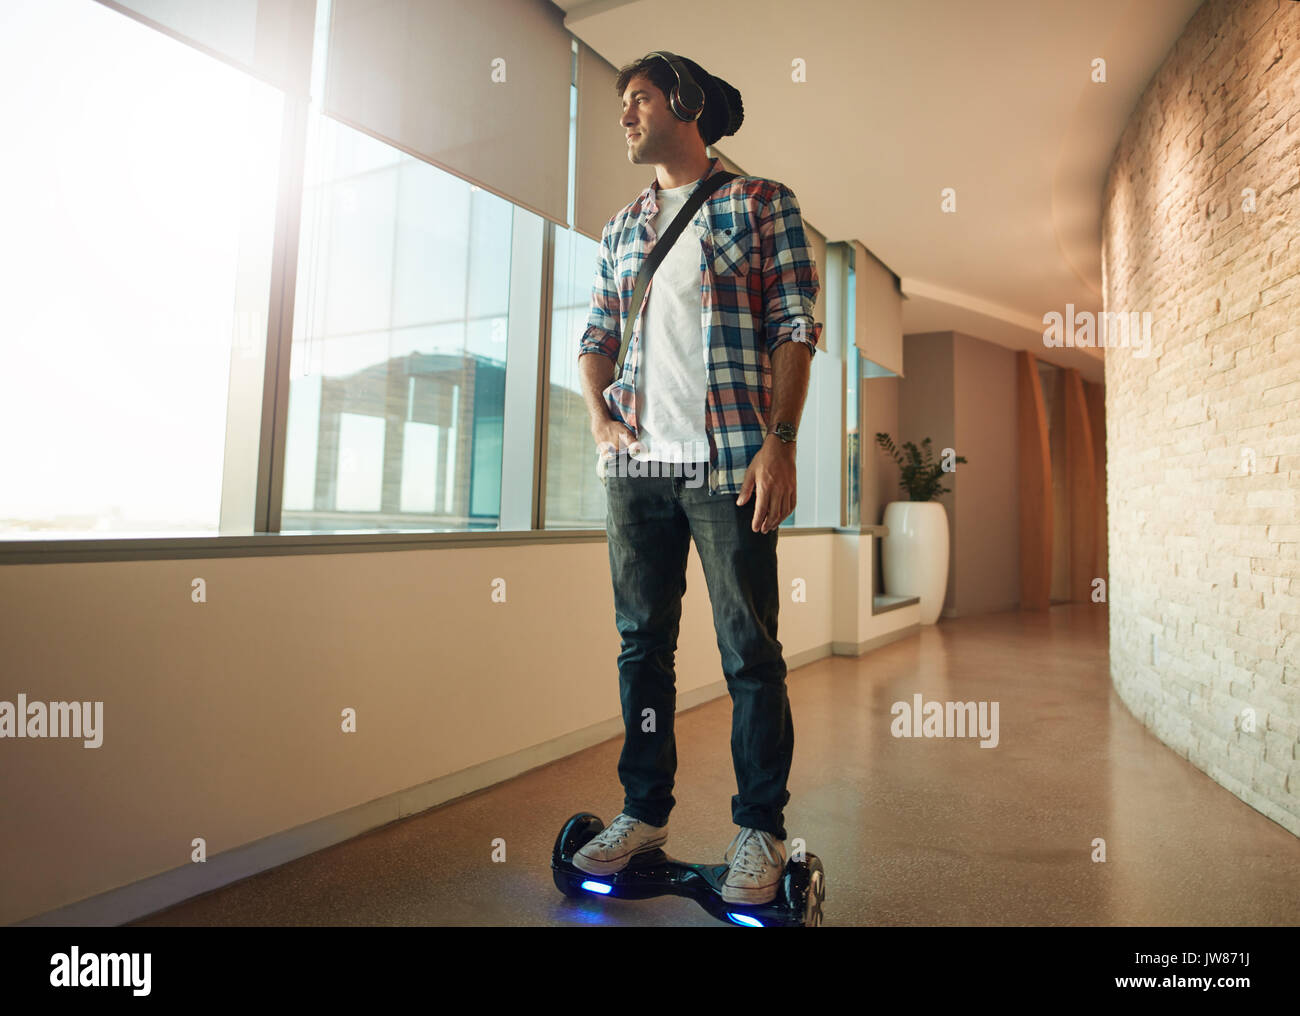 Indoor shot of young man riding on self-balancing electric scooter in office. Creative professional on hover board. - Stock Image